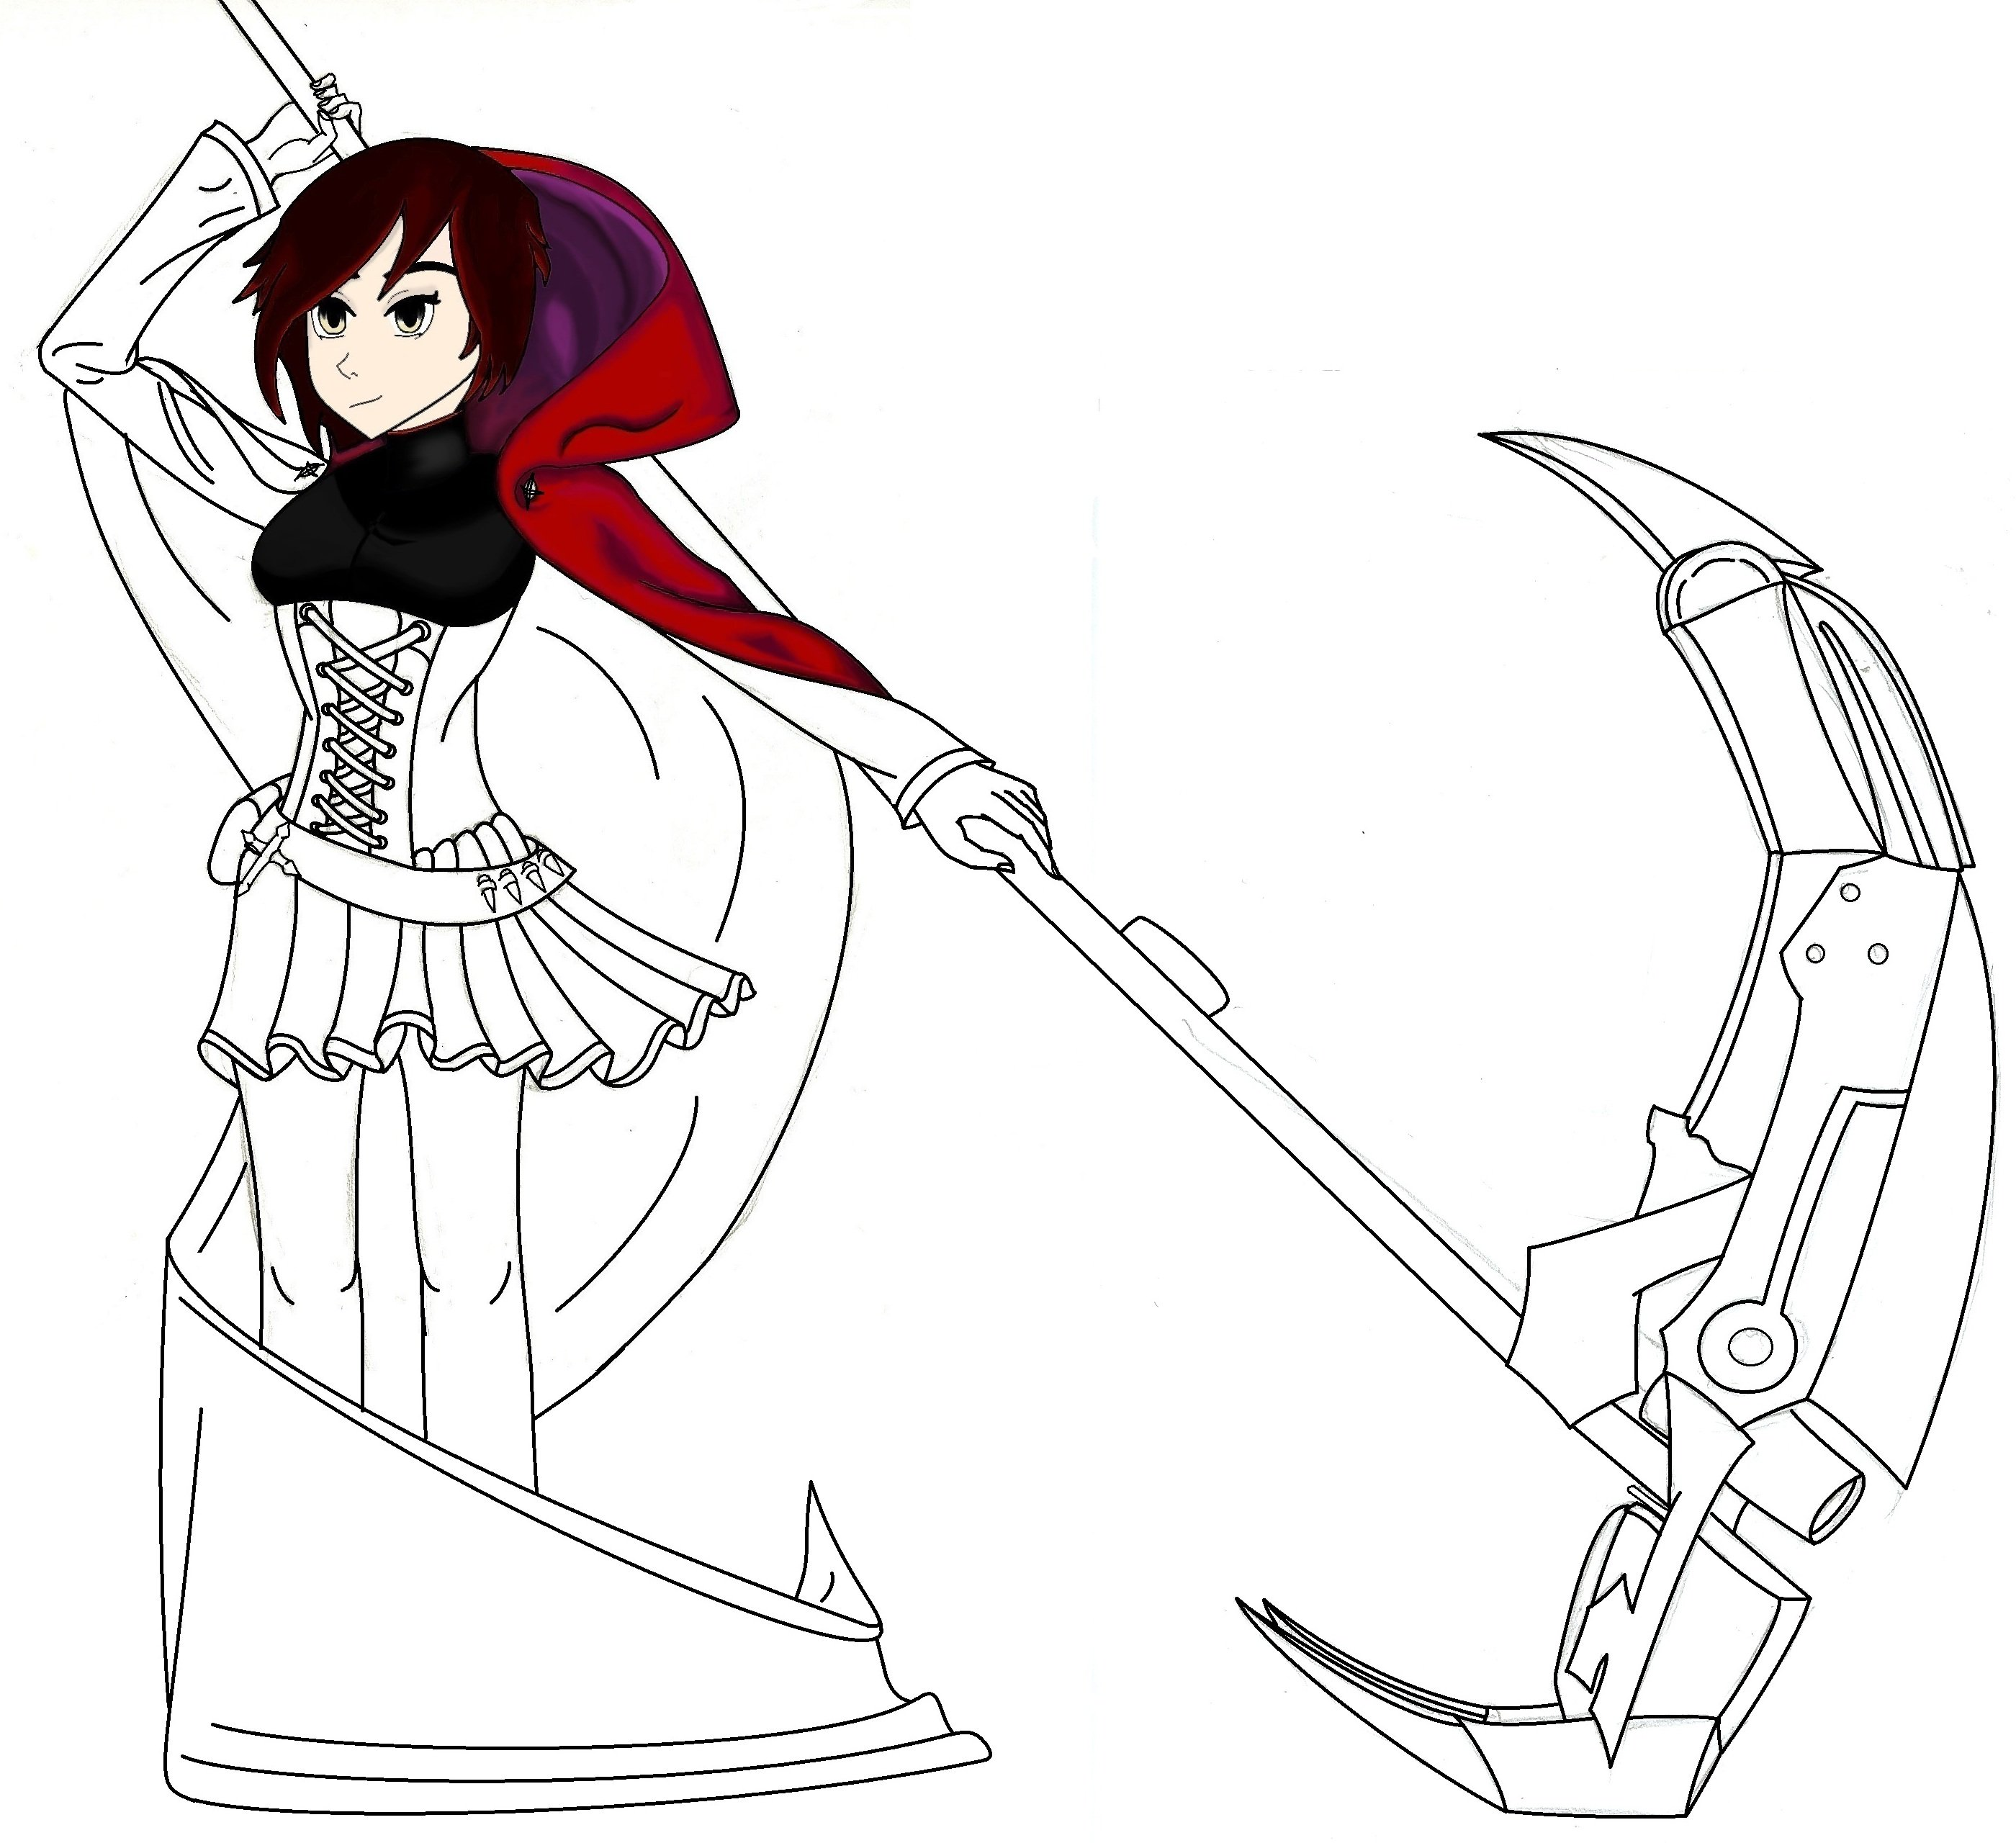 Rwby Draft finished but yet to be painted! by ALEXACEDEATH